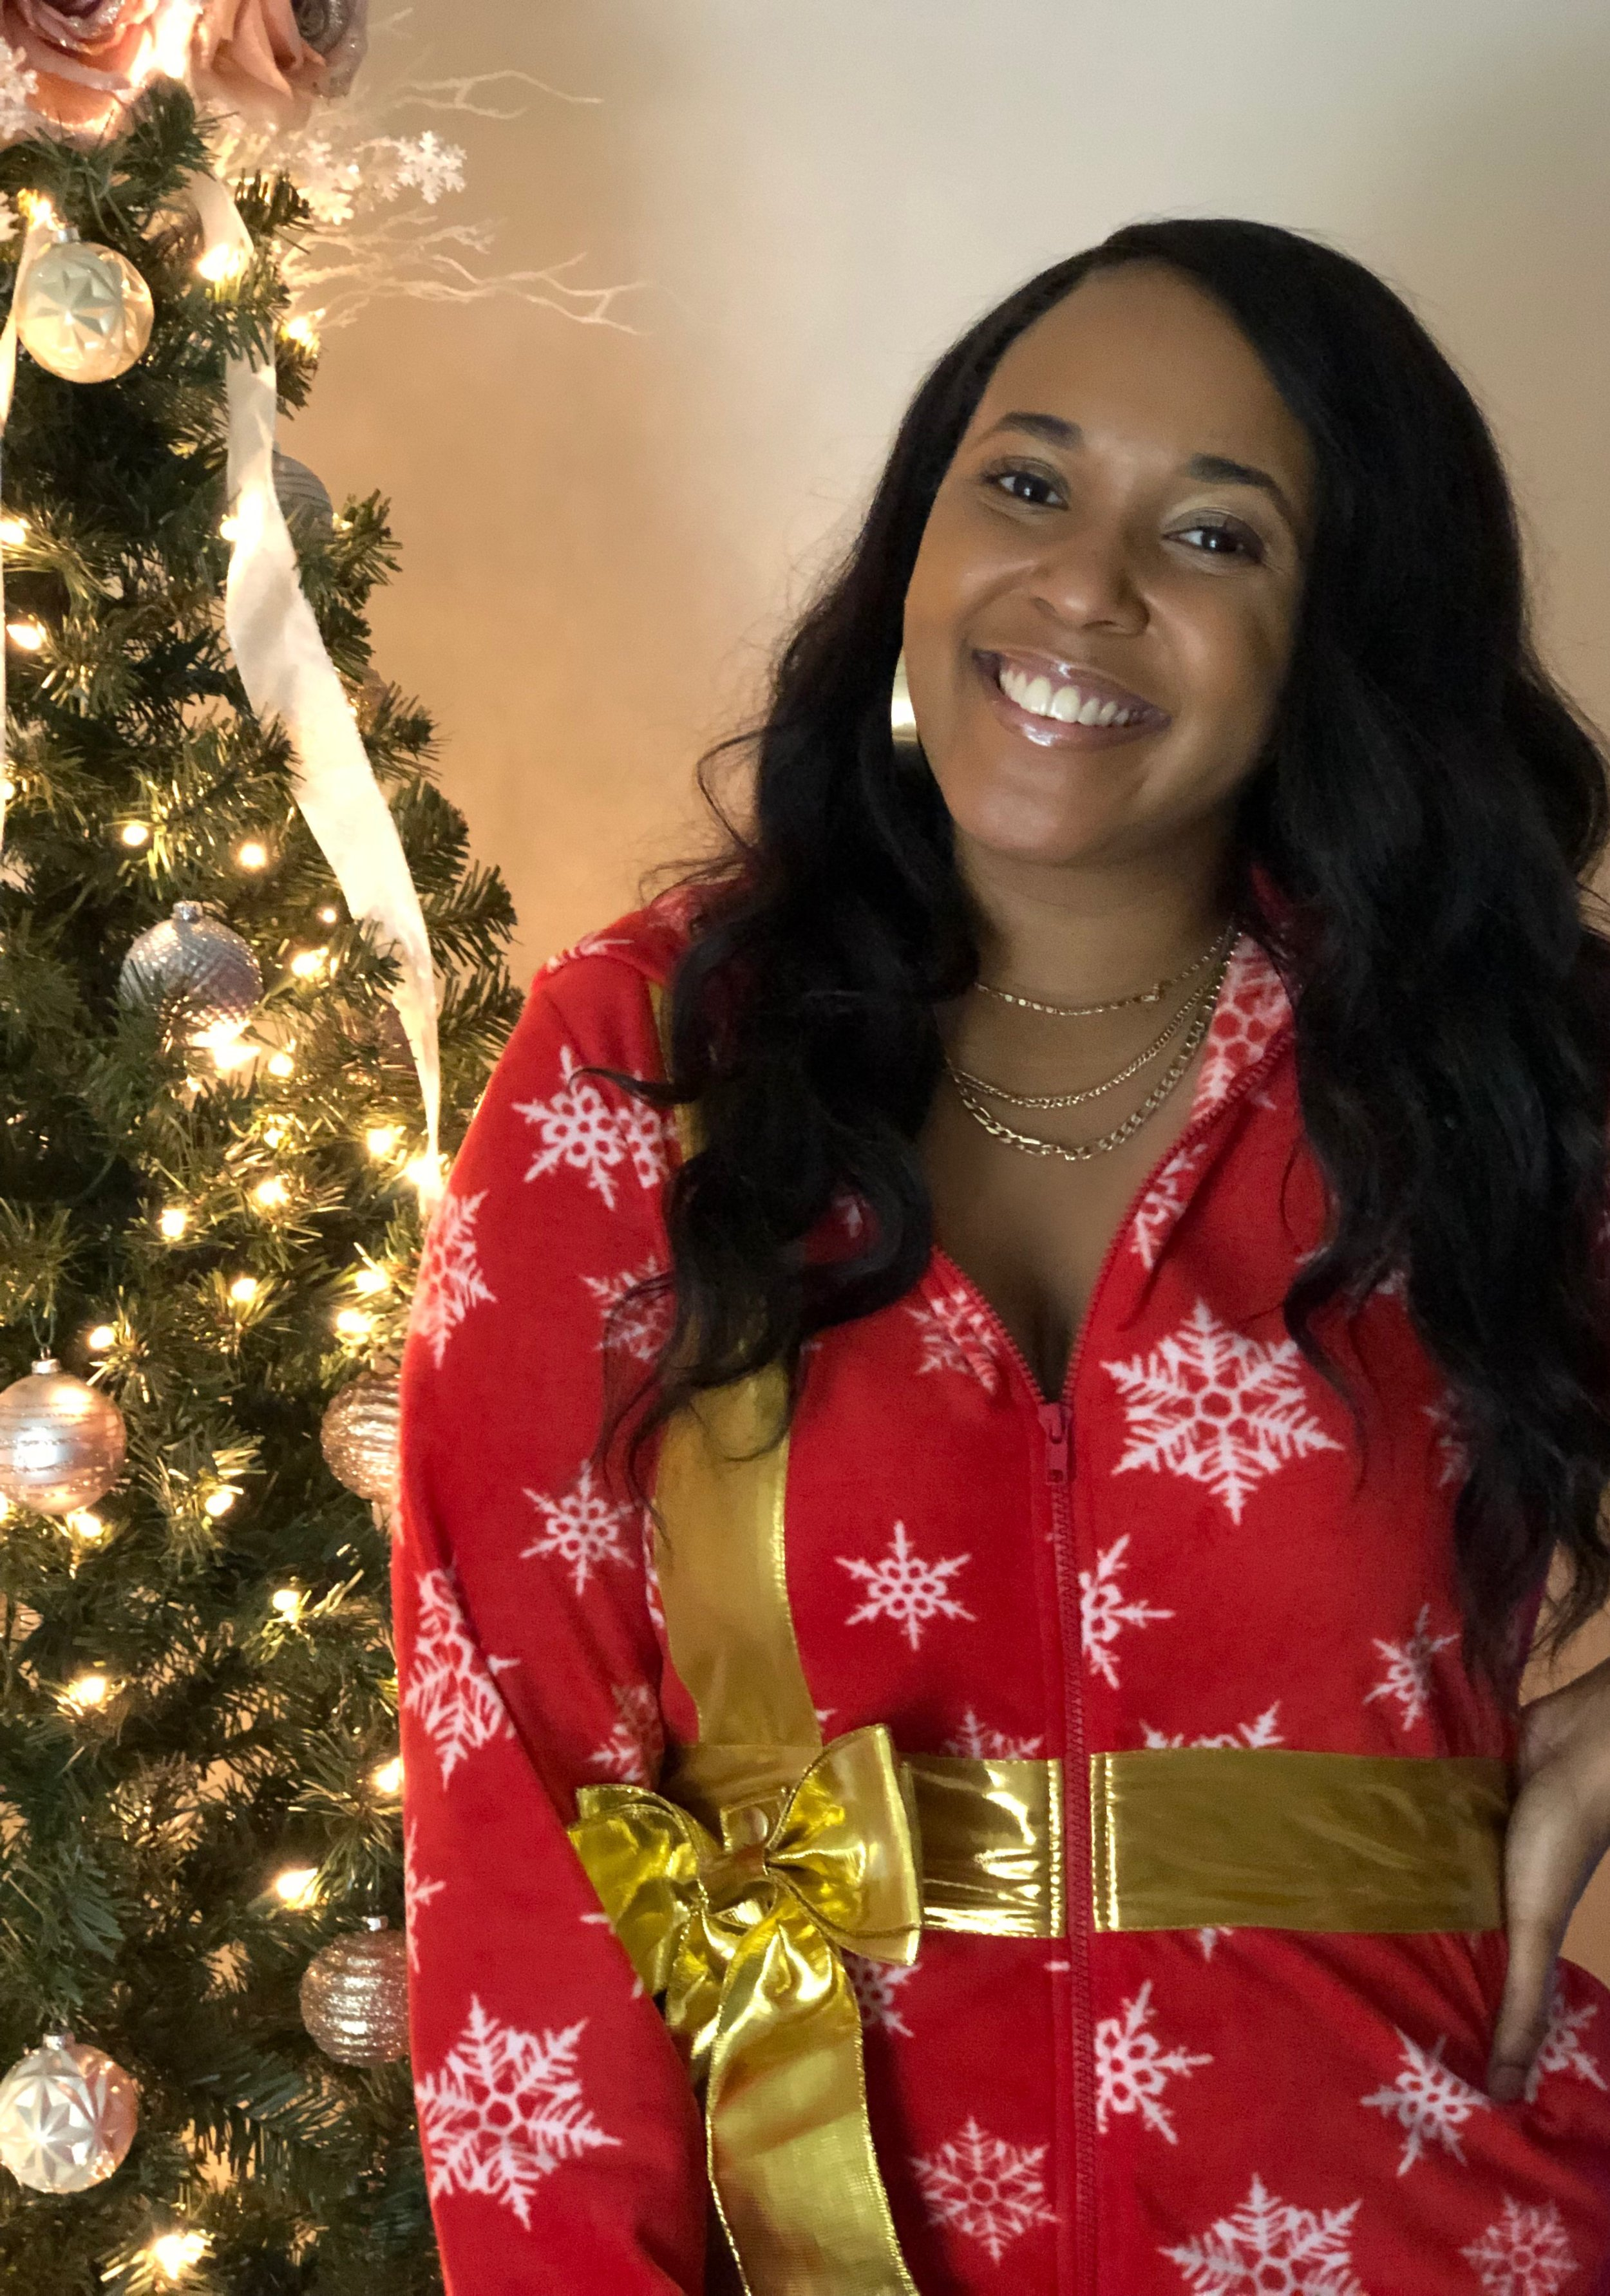 Just sharing to show off my onesie… 'cause I'm a gift, get it? LOL.